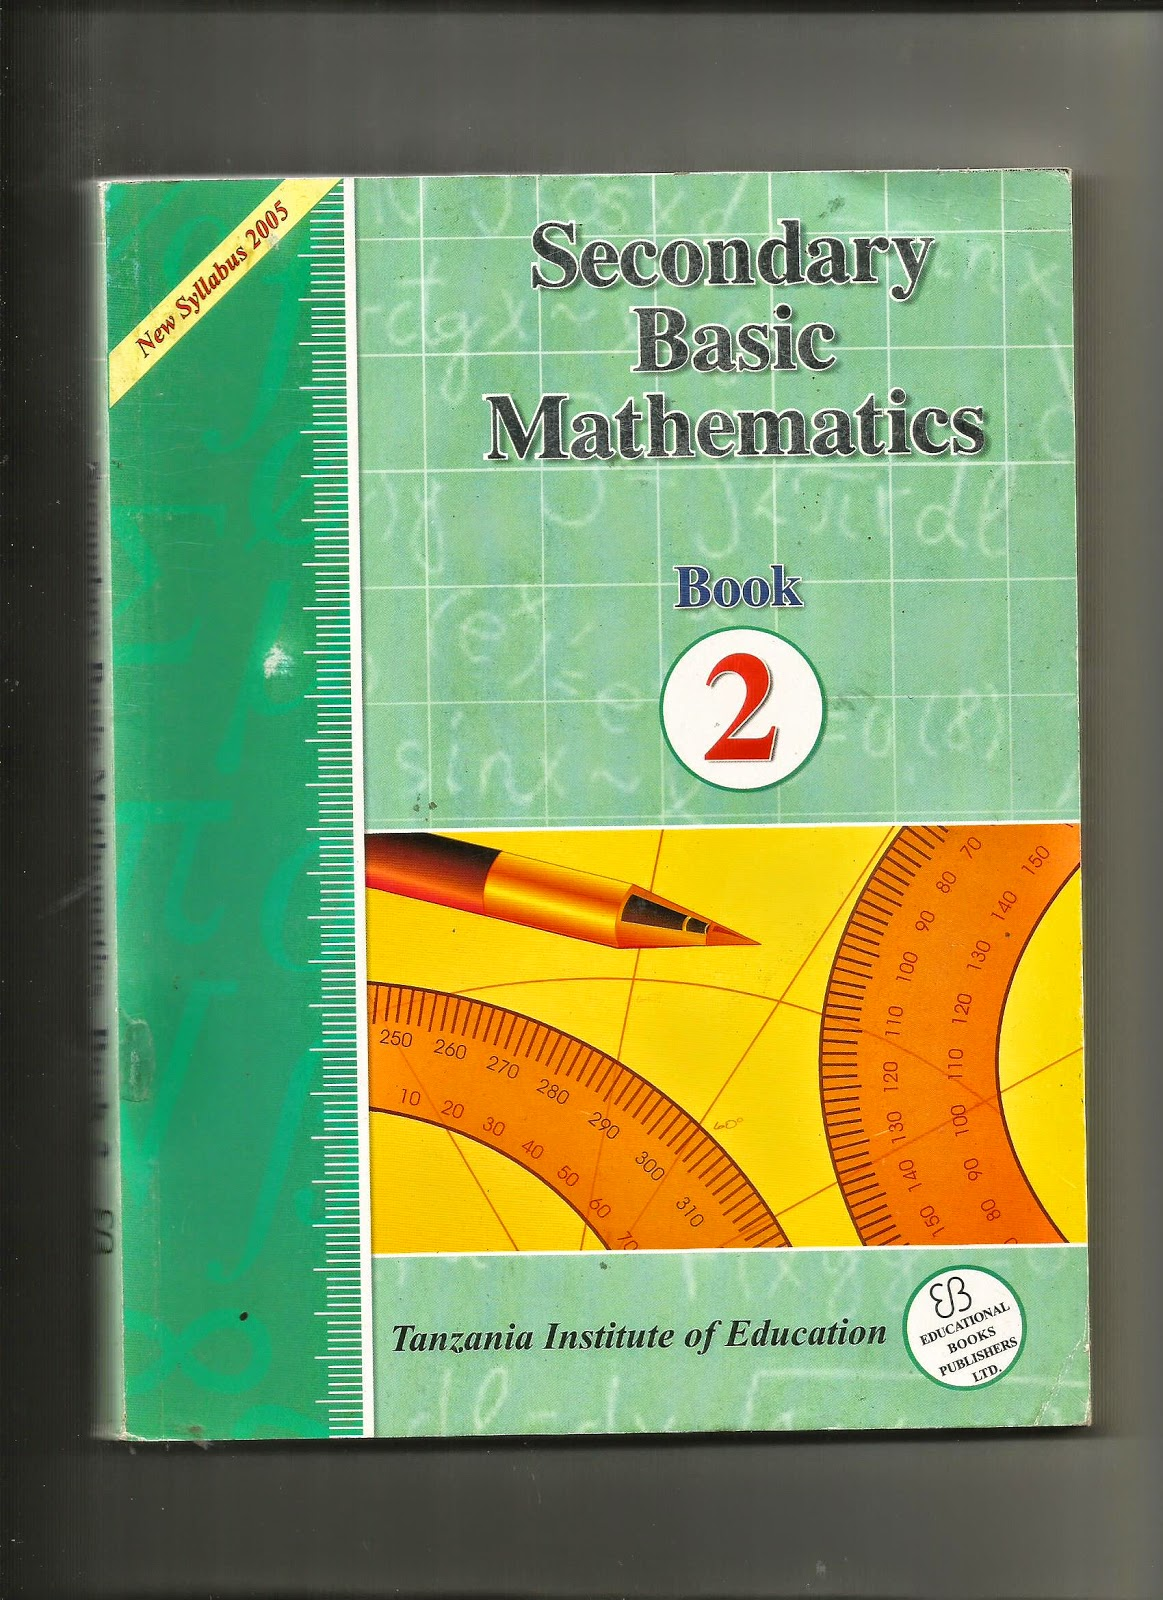 SCIENCE STUDIES BLOG: SECONDARY BASIC MATHEMATICS BOOK TWO